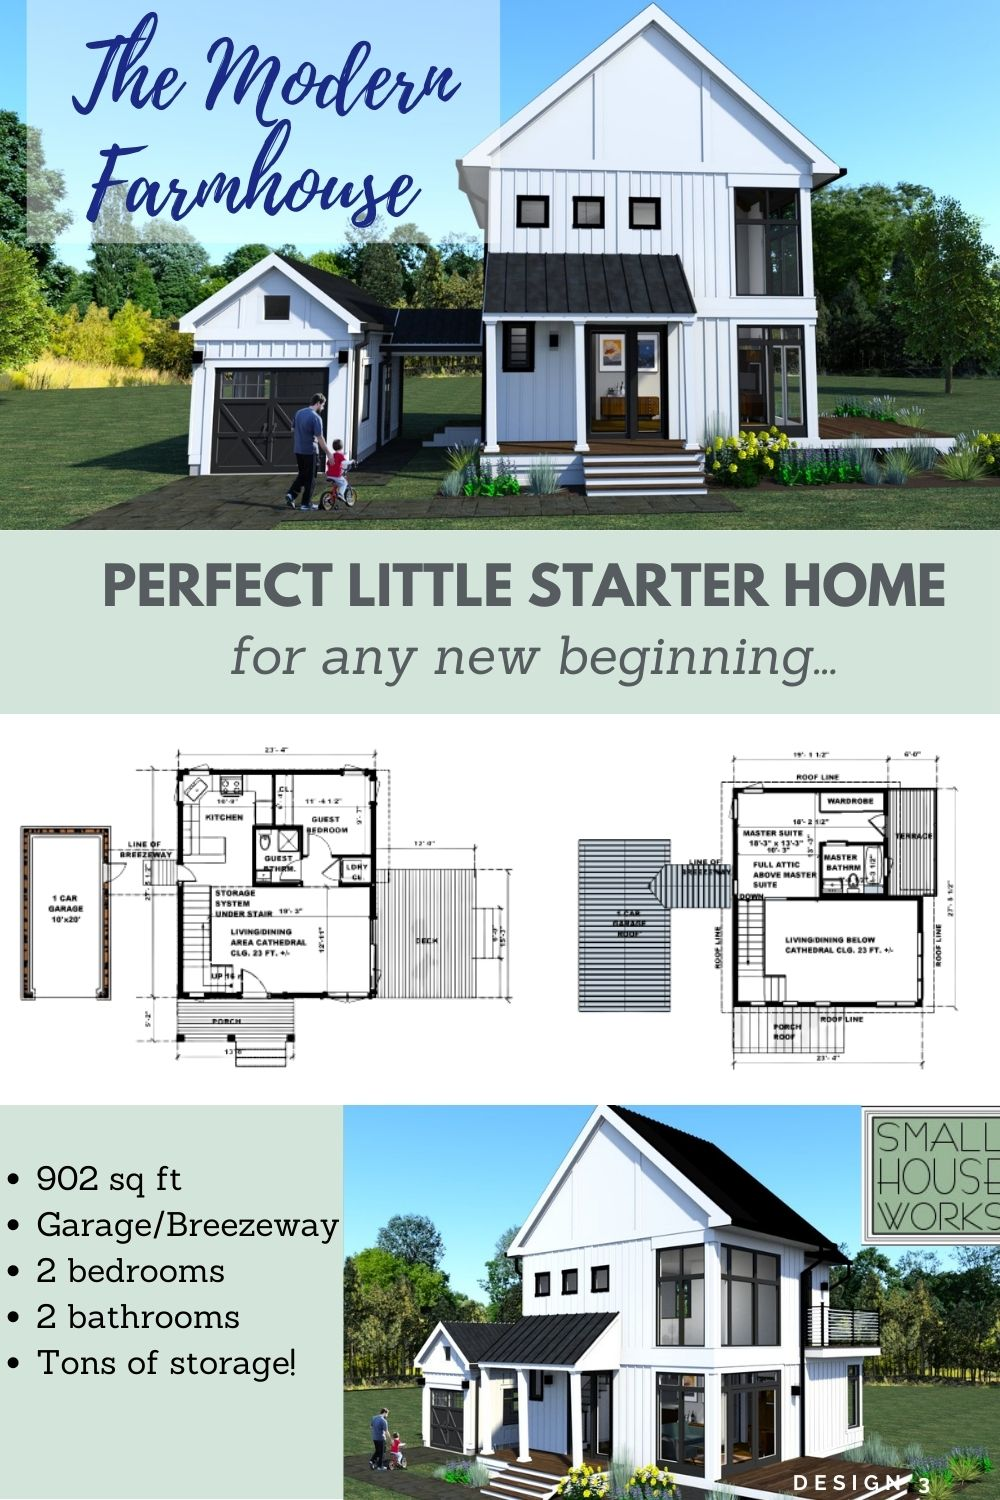 3d rendering of The Modern Farmhouse Design 3 with text: The Modern Farmhouse Perfect Little Starter Home for any new beginning...""